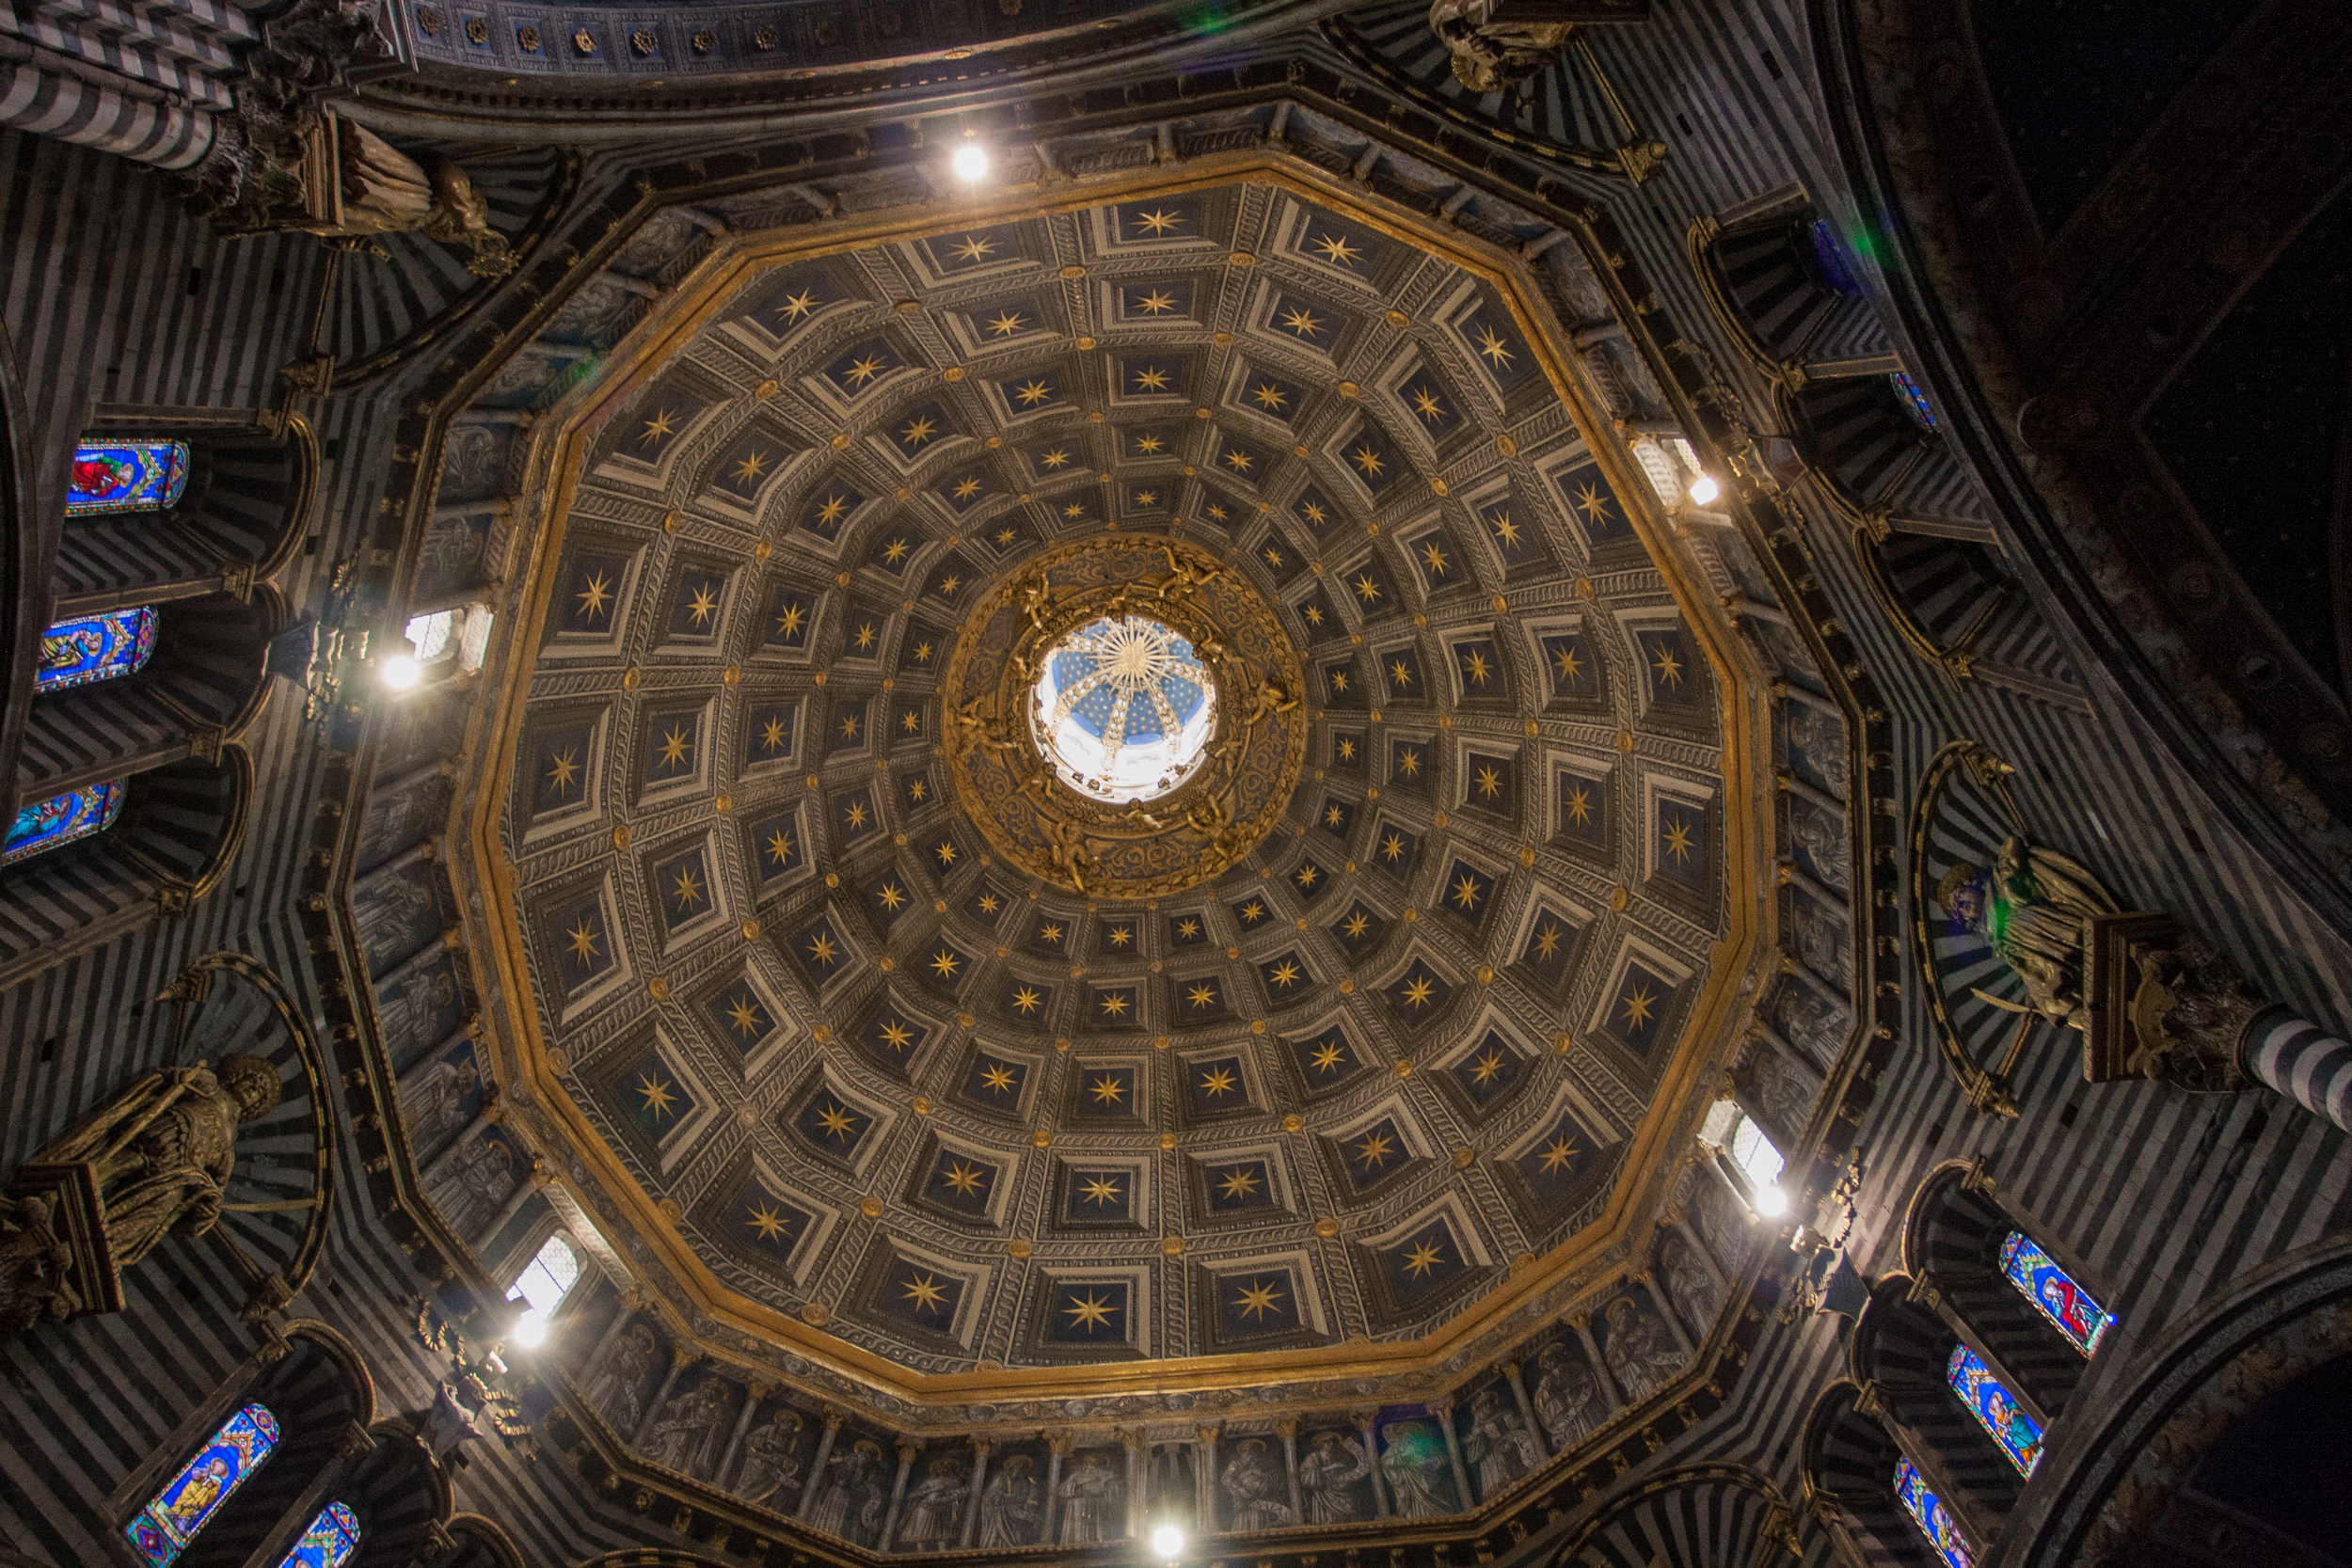 The interior of the Dome.